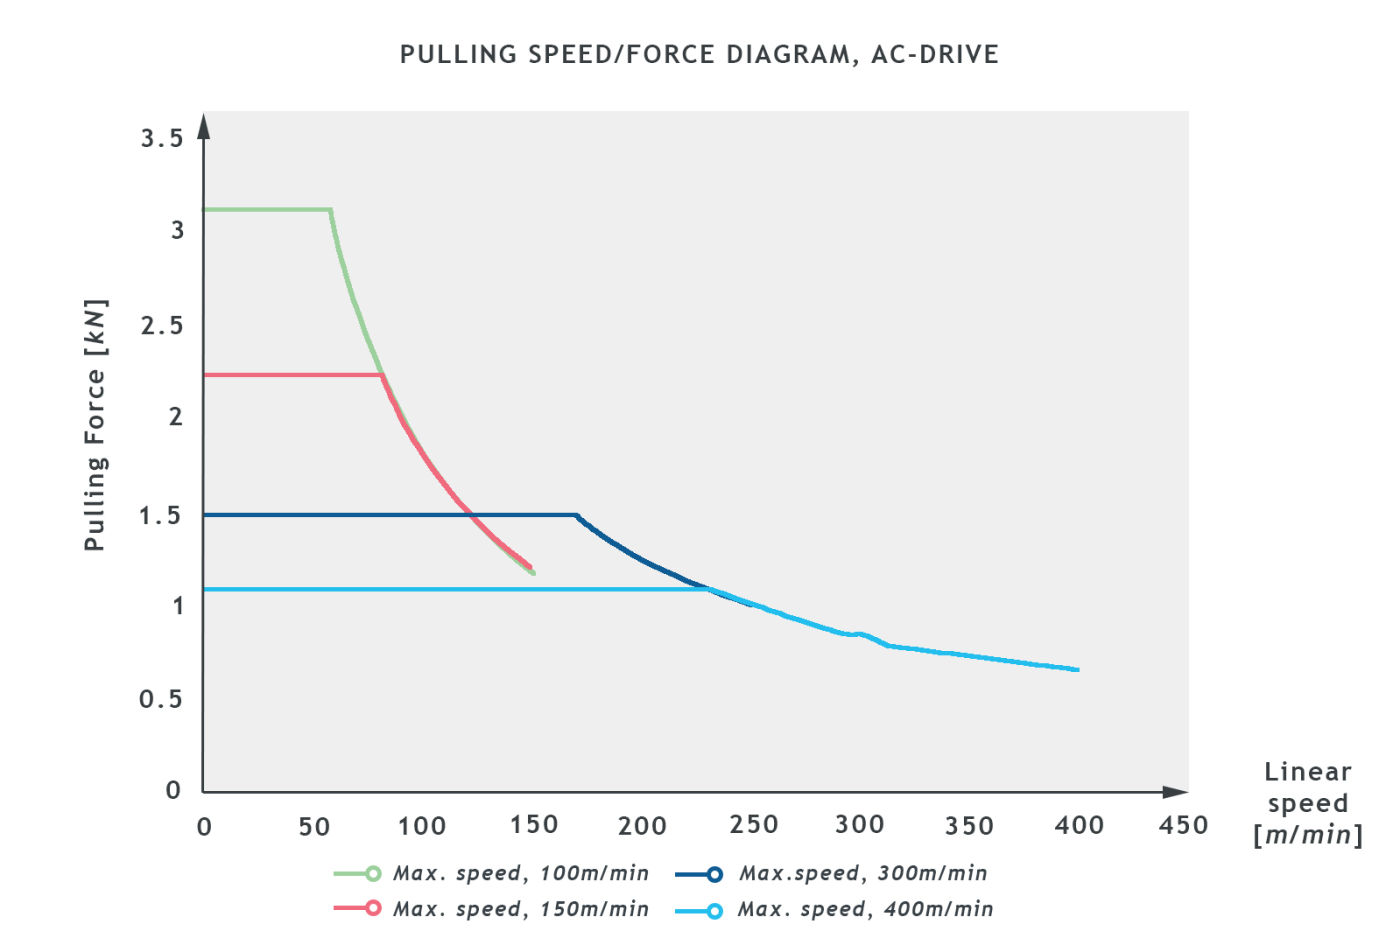 BCA9_SB0601018_PULLING_SPEED_graph1.jpg